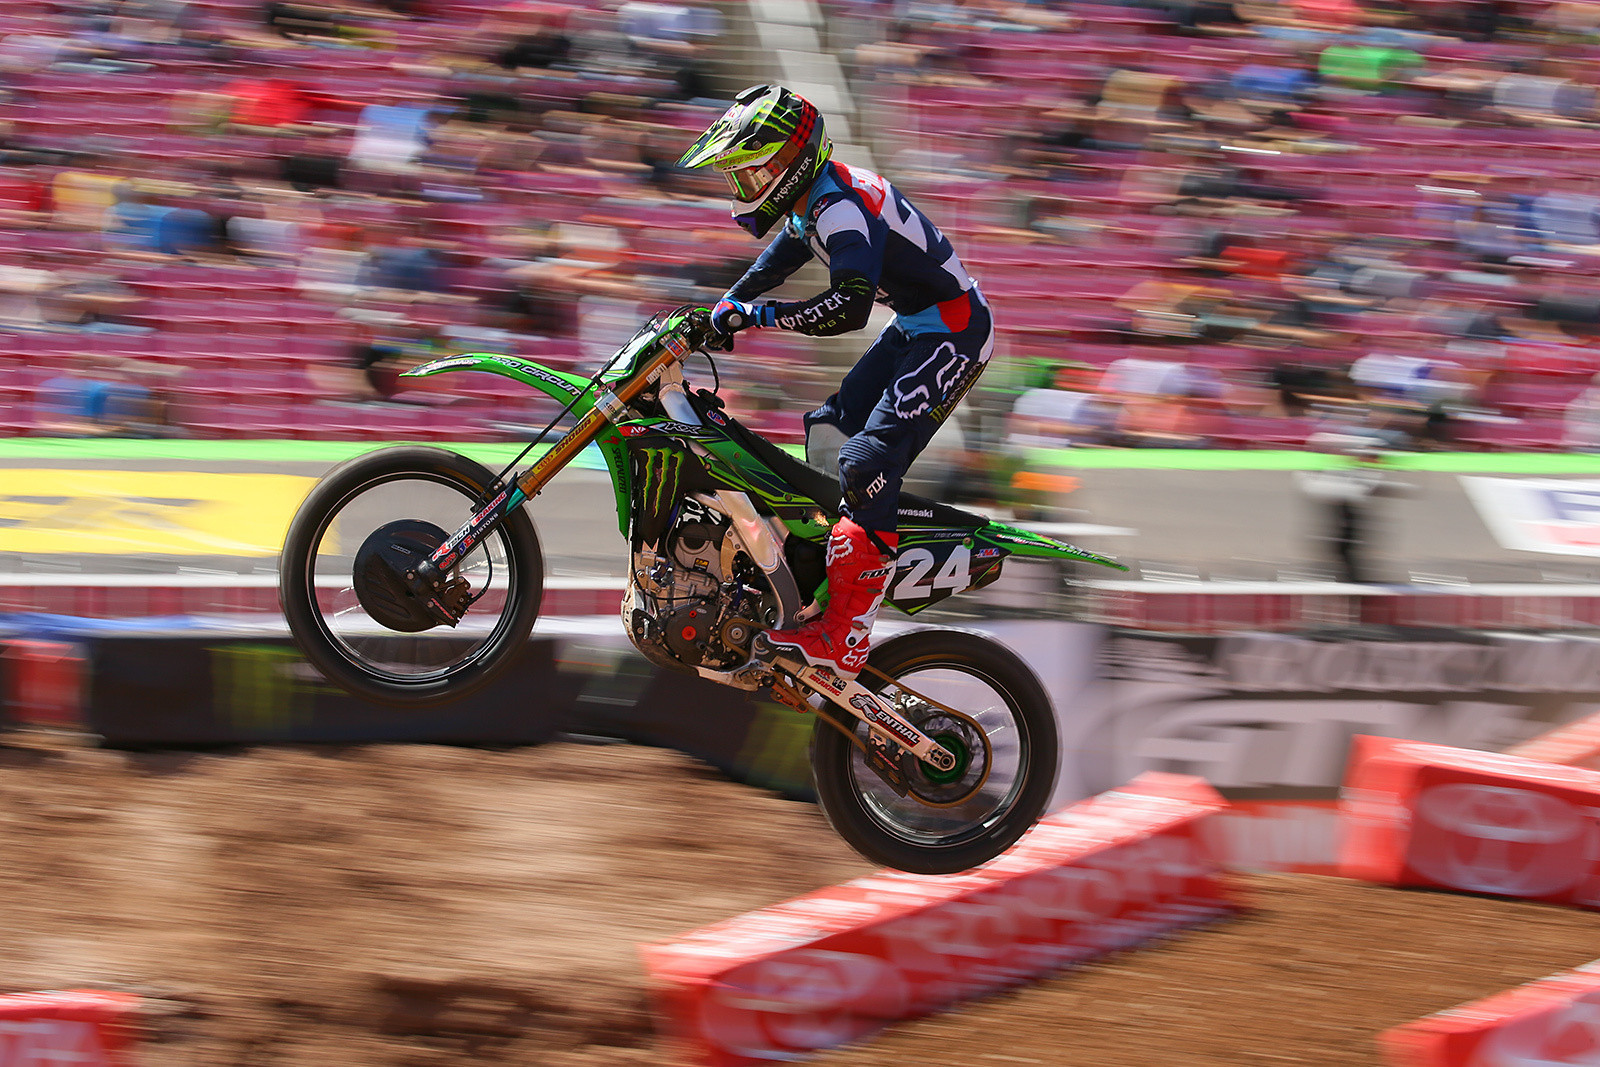 Austin Forkner Sustains Broken Wrist & Collarbone in Practice Crash